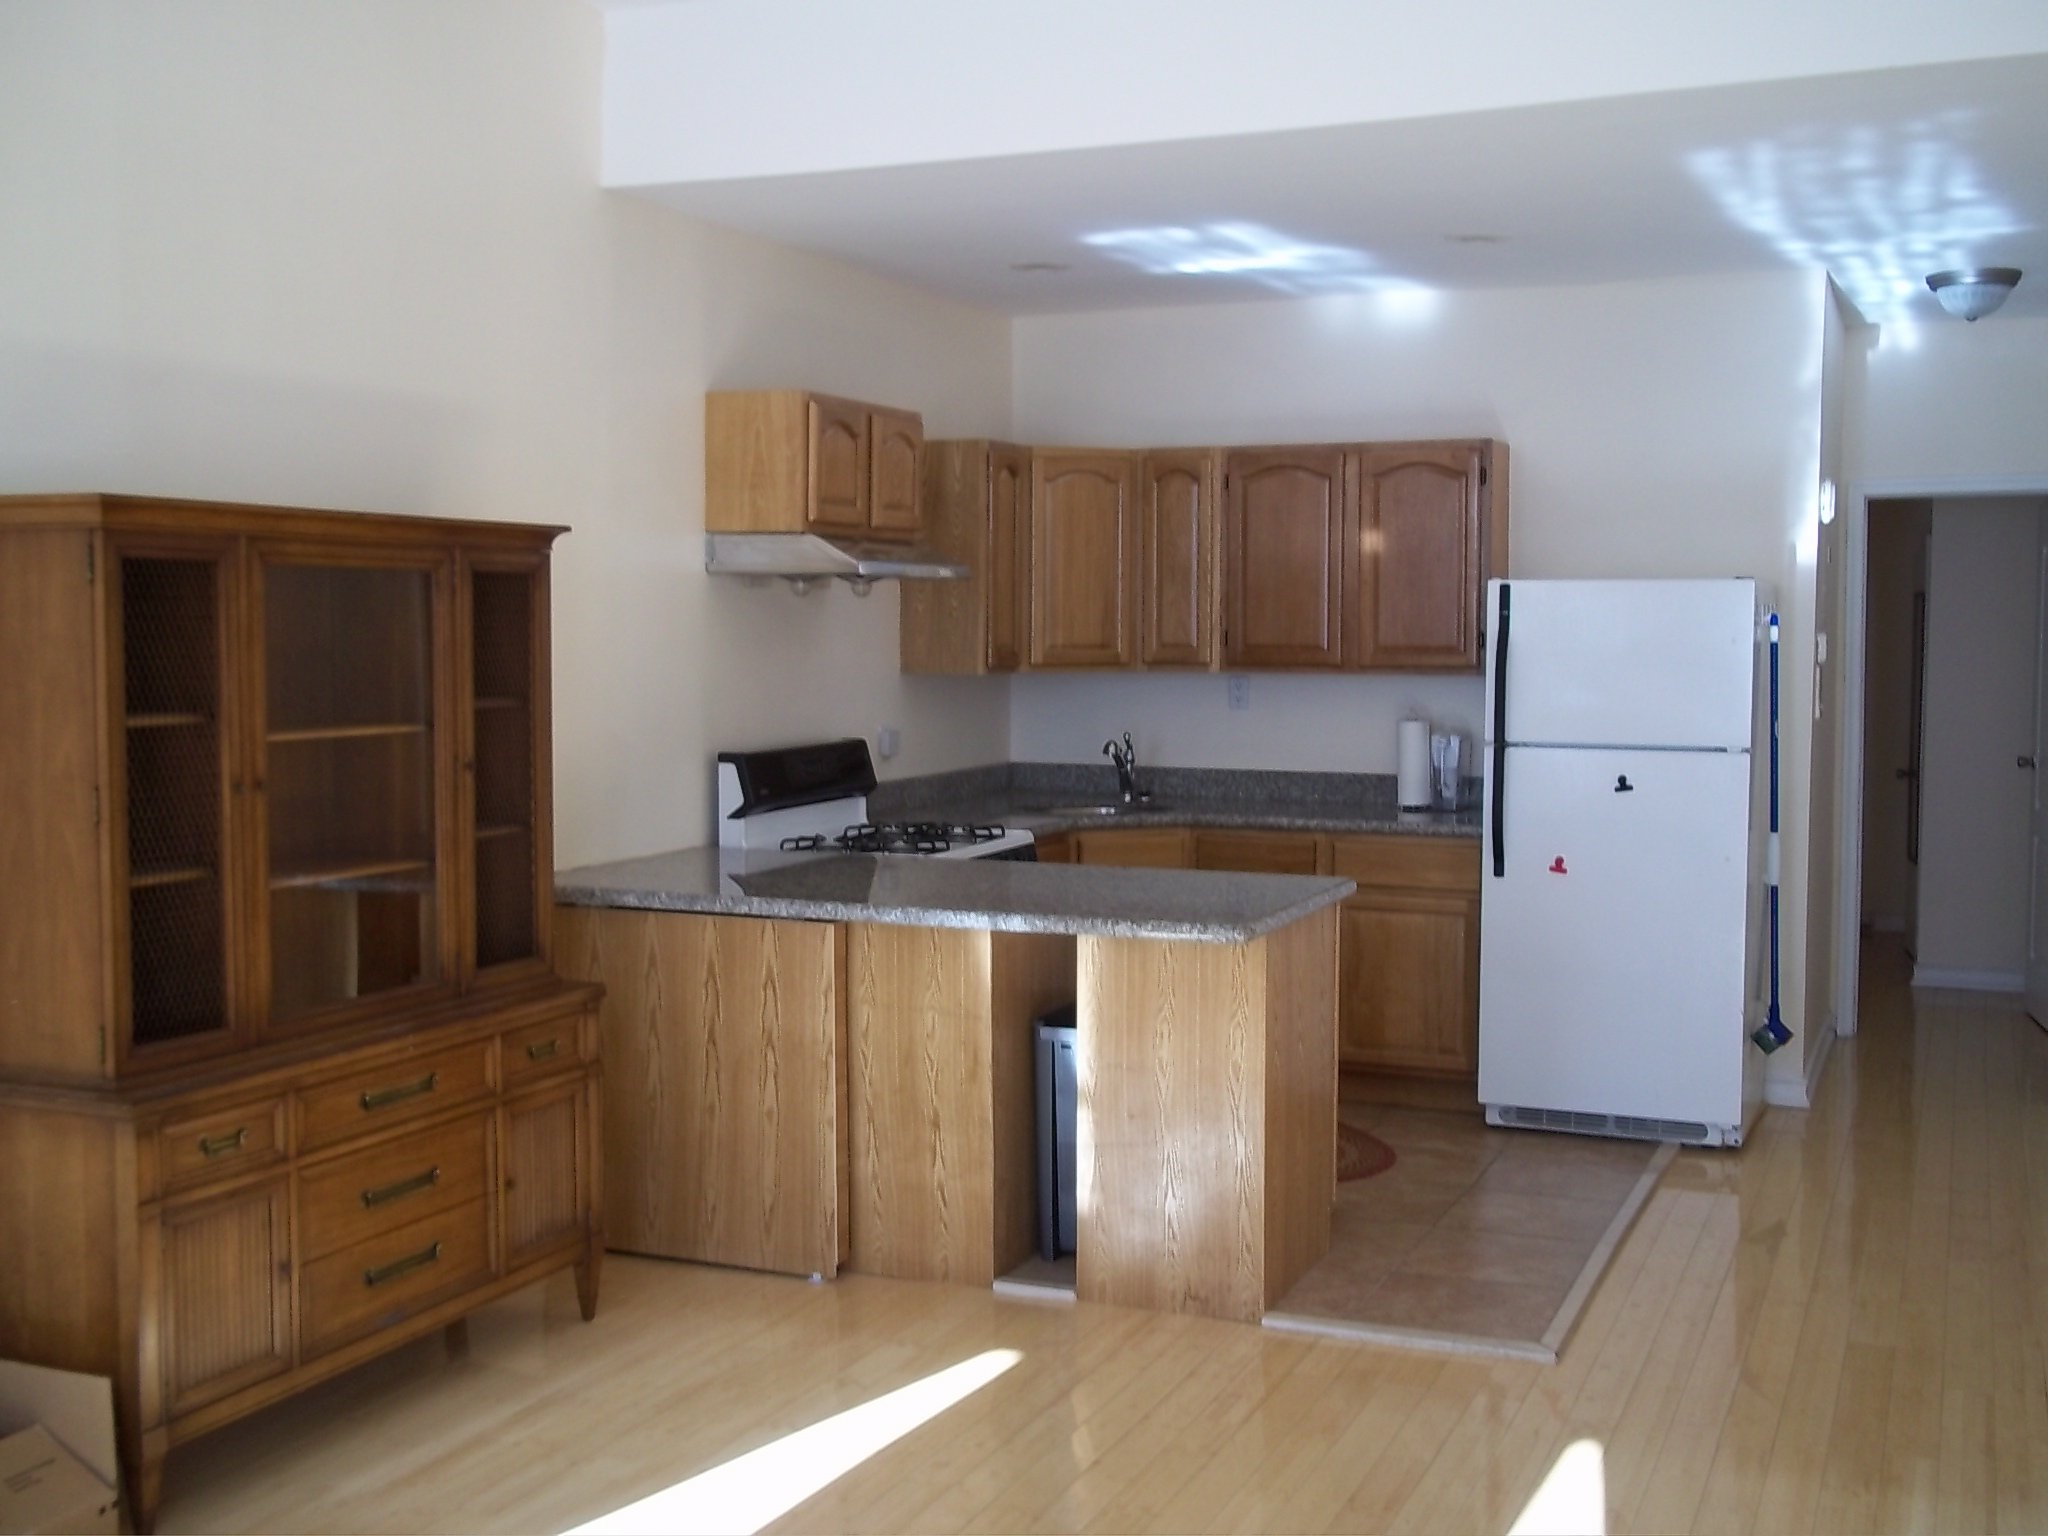 brooklyn 1 bedroom apartments for rent. new york apartment 1